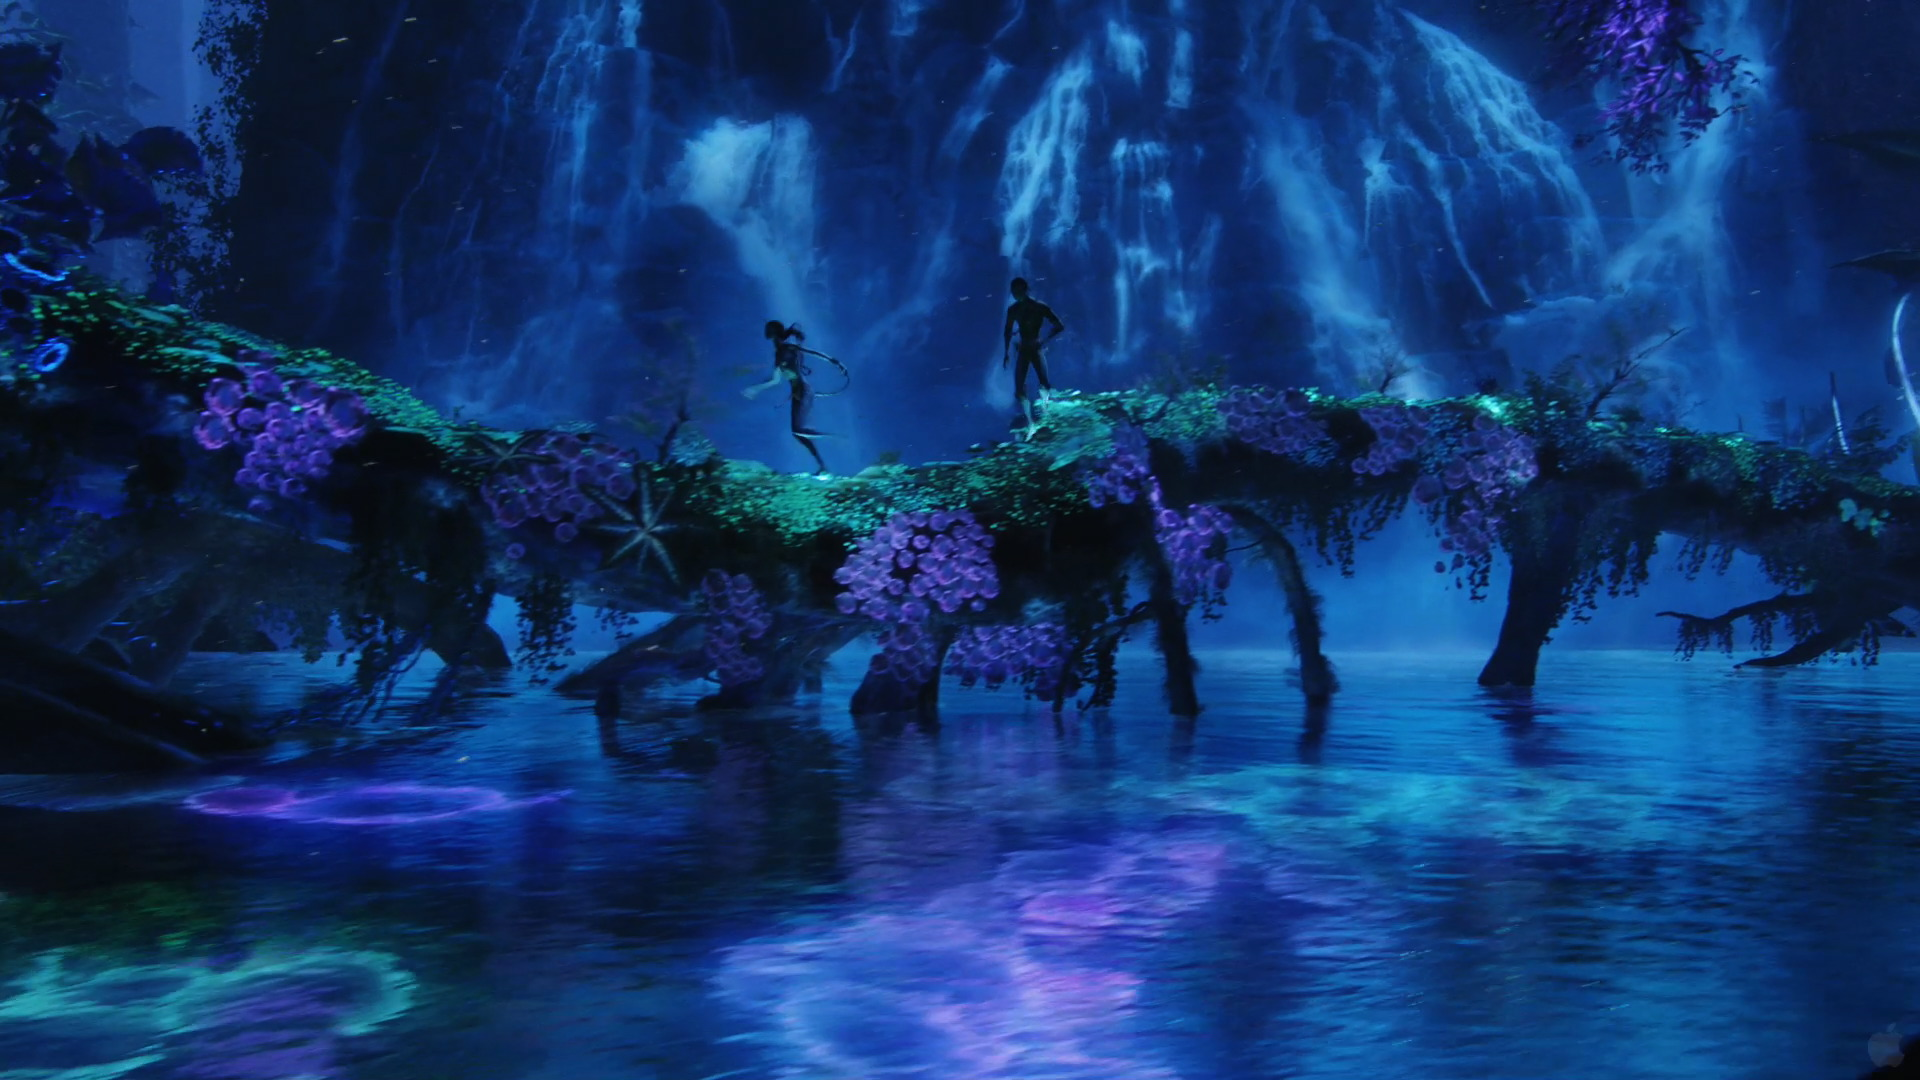 Avatar Movie Pandora Blue Lagoon from Avatar